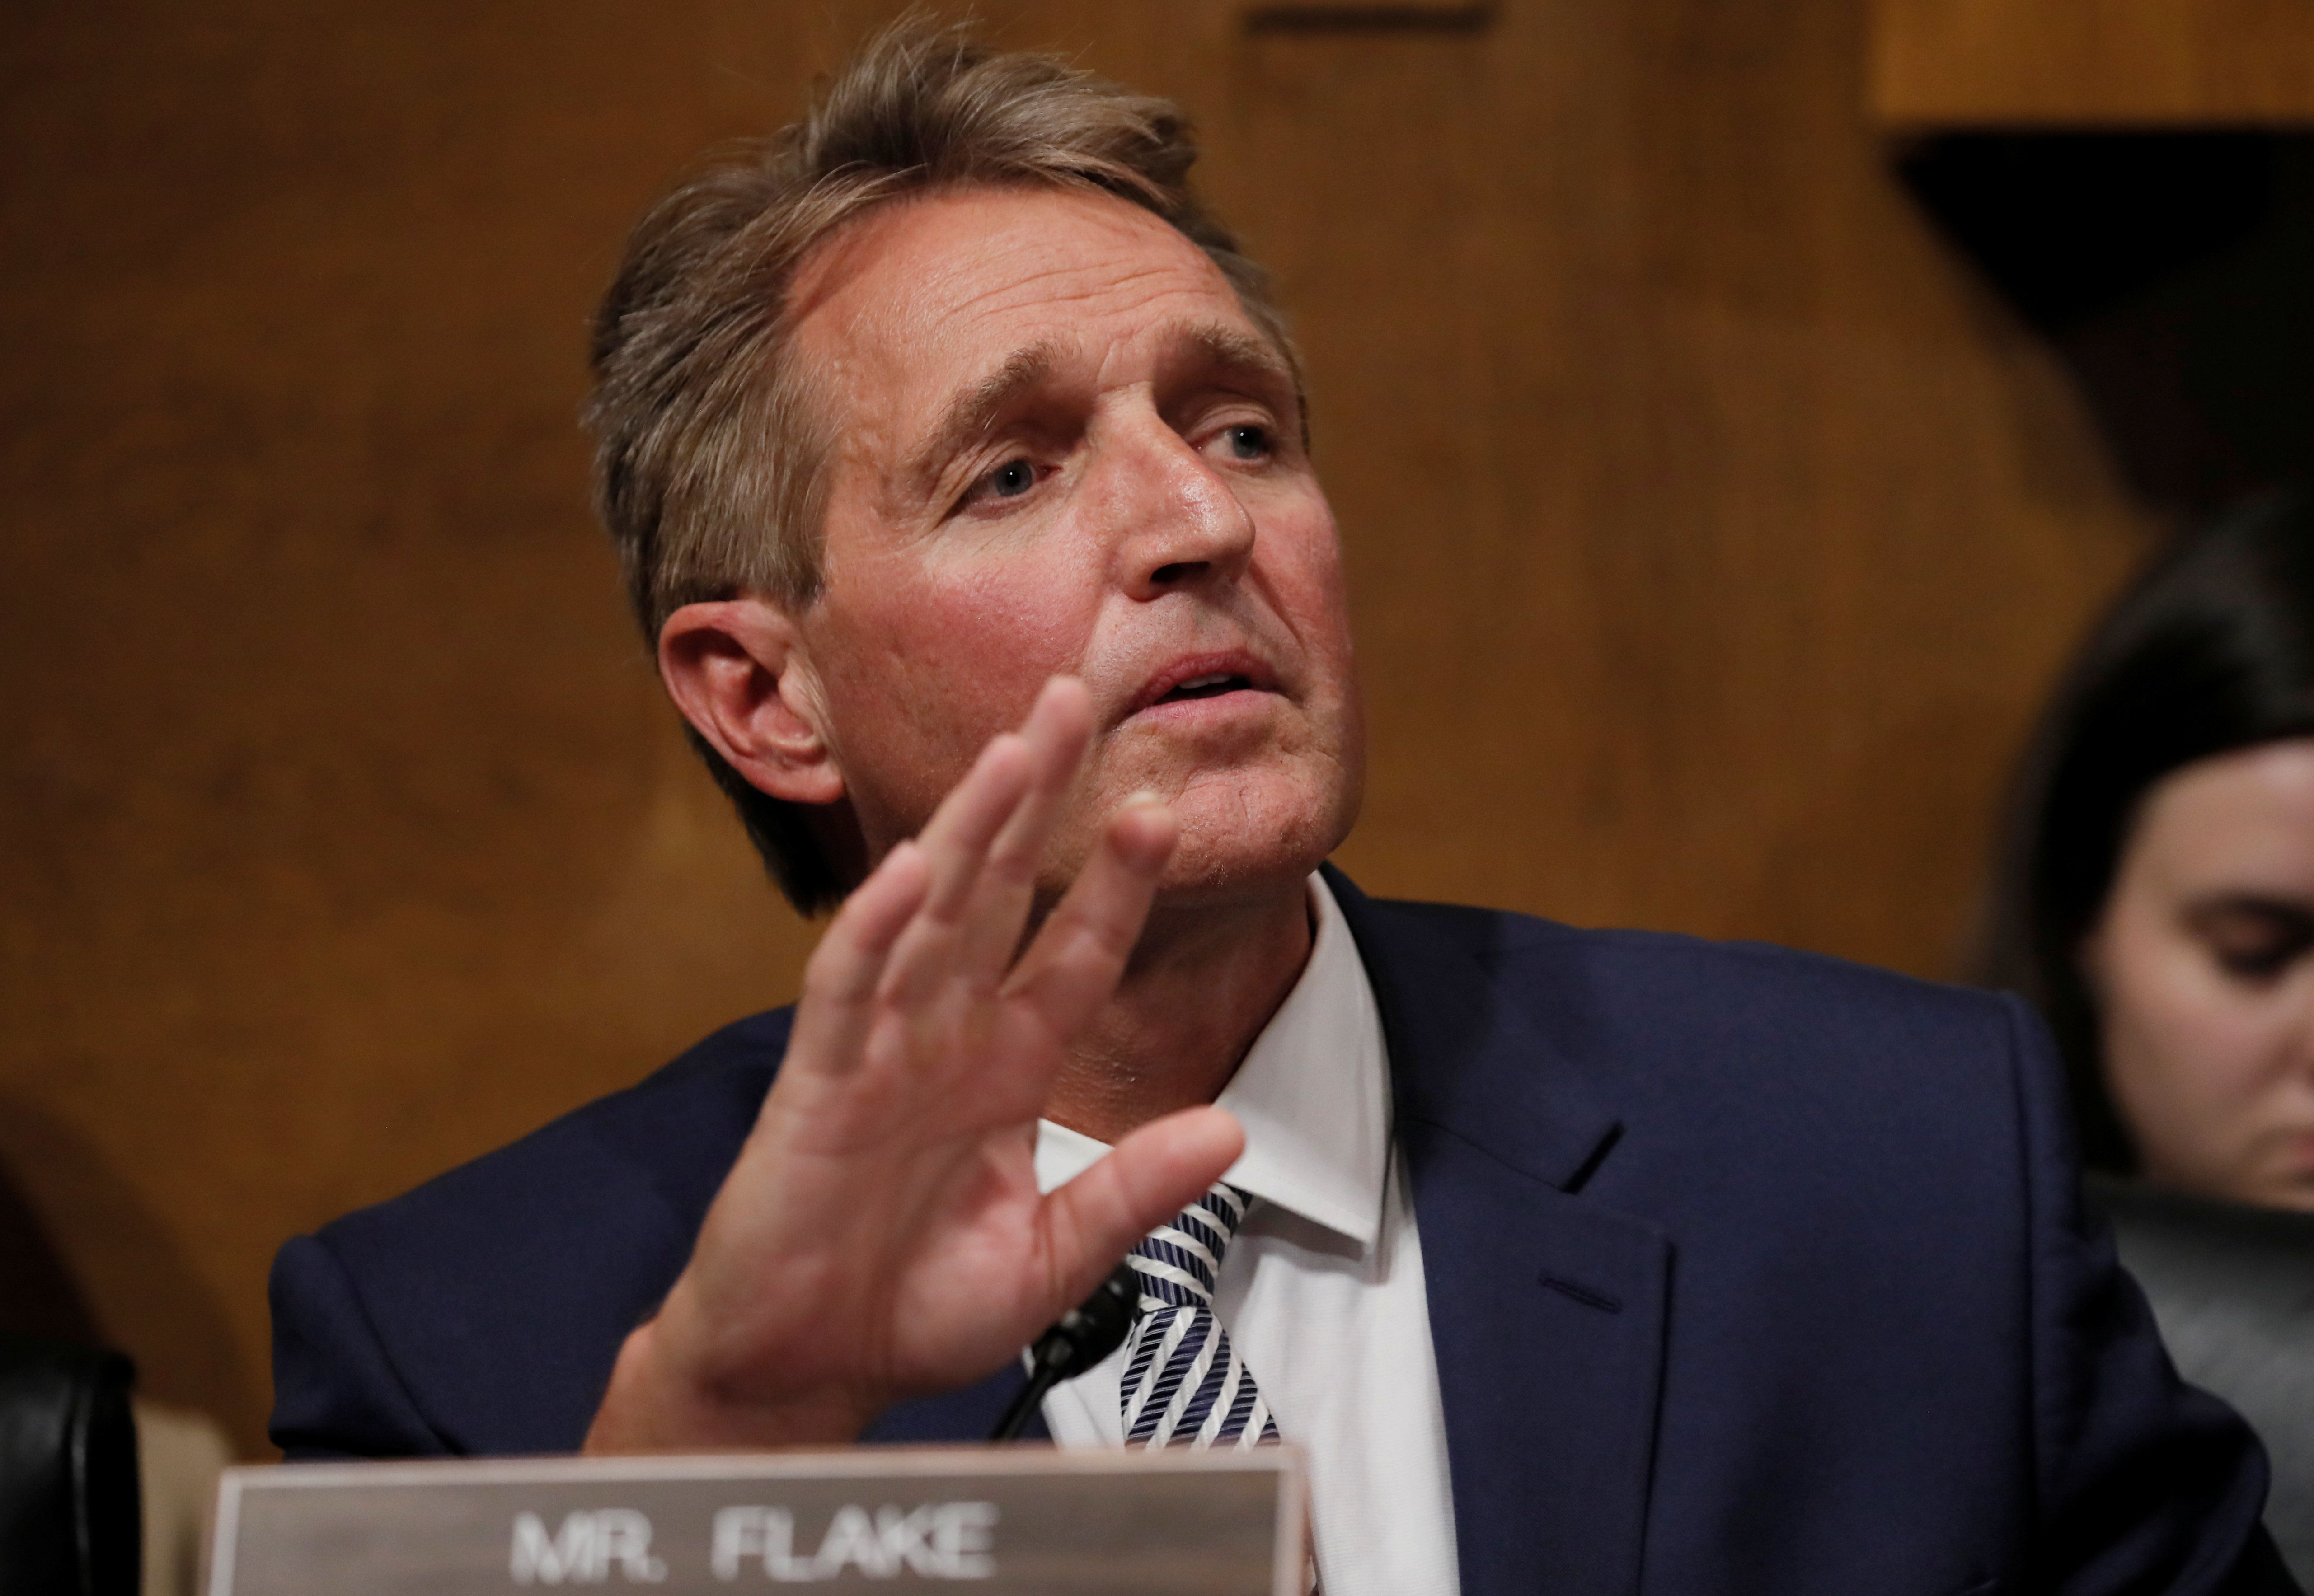 Senate Judiciary Committee member Sen. Jeff Flake (R-AZ) speaks during a Judiciary Committee meeting to vote on the nomination of Judge Brett Kavanaugh to be a U.S. Supreme Court associate justice on Capitol Hill in Washington, U.S., September 28, 2018. REUTERS/Jim Bourg